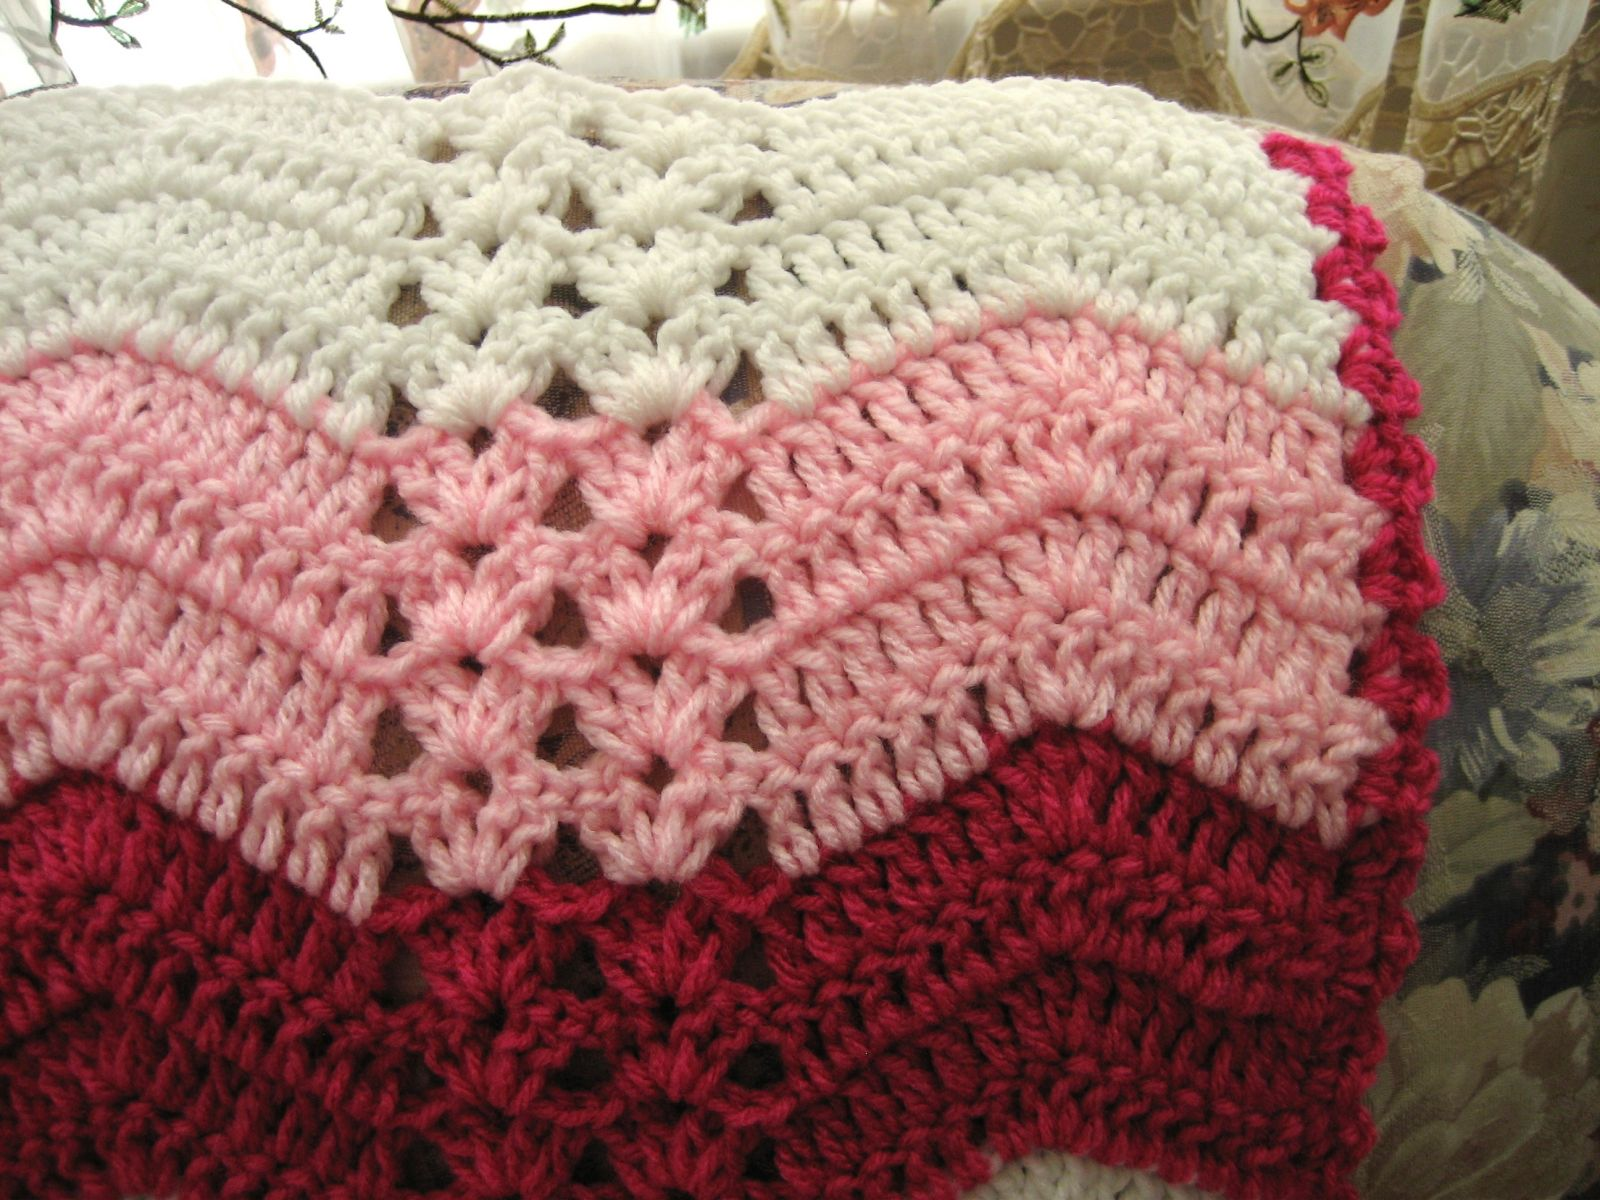 Crochet Patterns For Afghan : Afghans Free Crochet Afghan Patterns Afghan Hearts Afghan Angel Afghan ...